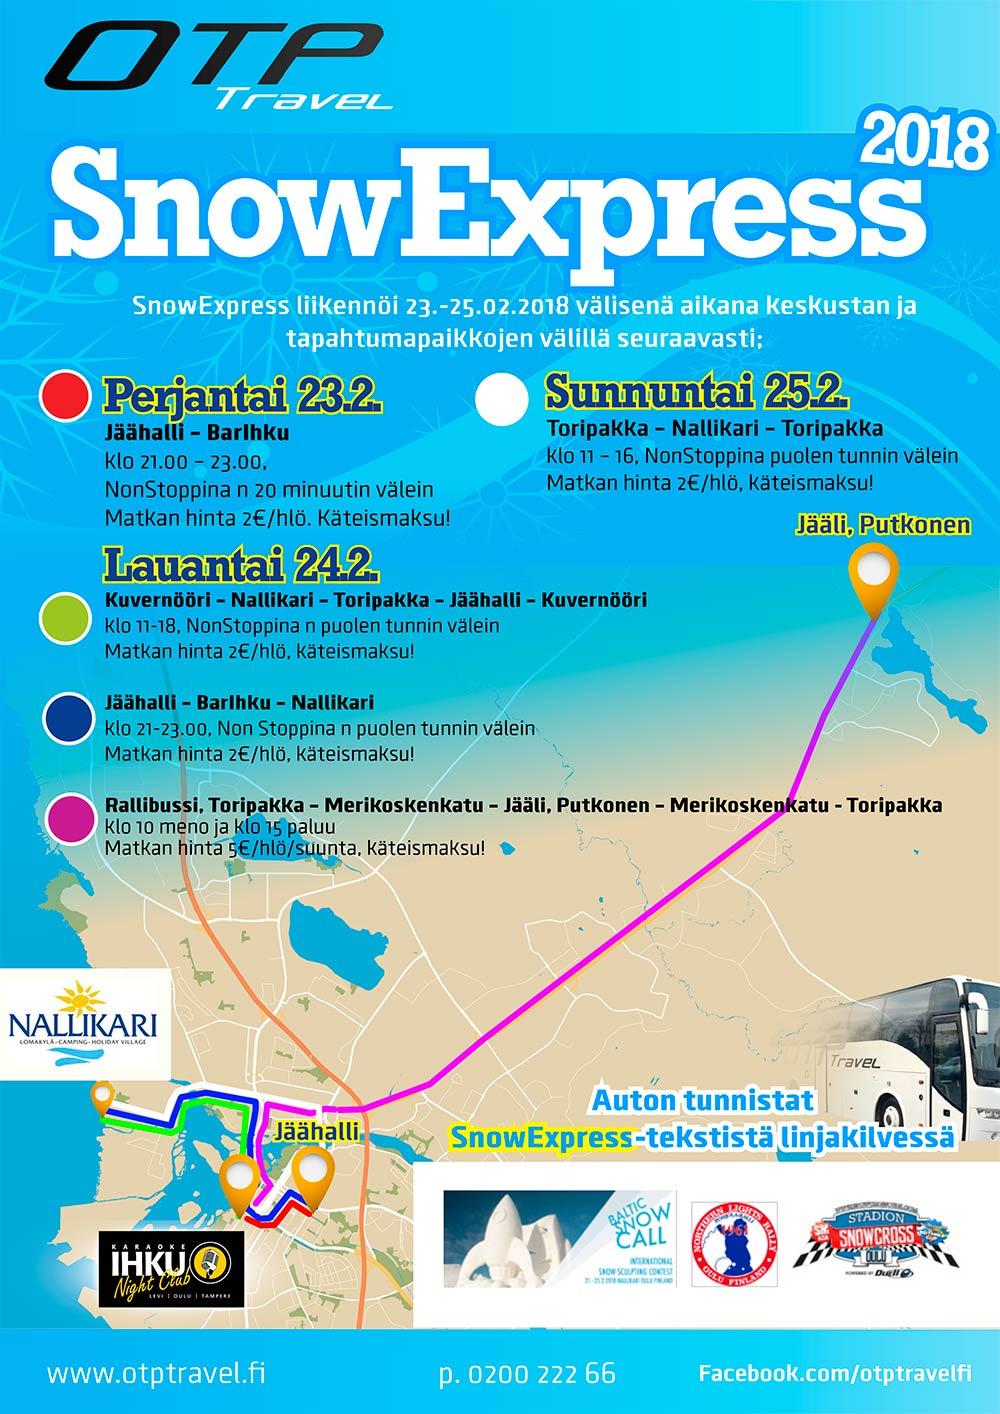 In addition of the Baltic Snow Call, Snow Express also serves the visitors of the Northern Lights Rally and Stadion Snow Cross Oulu events.